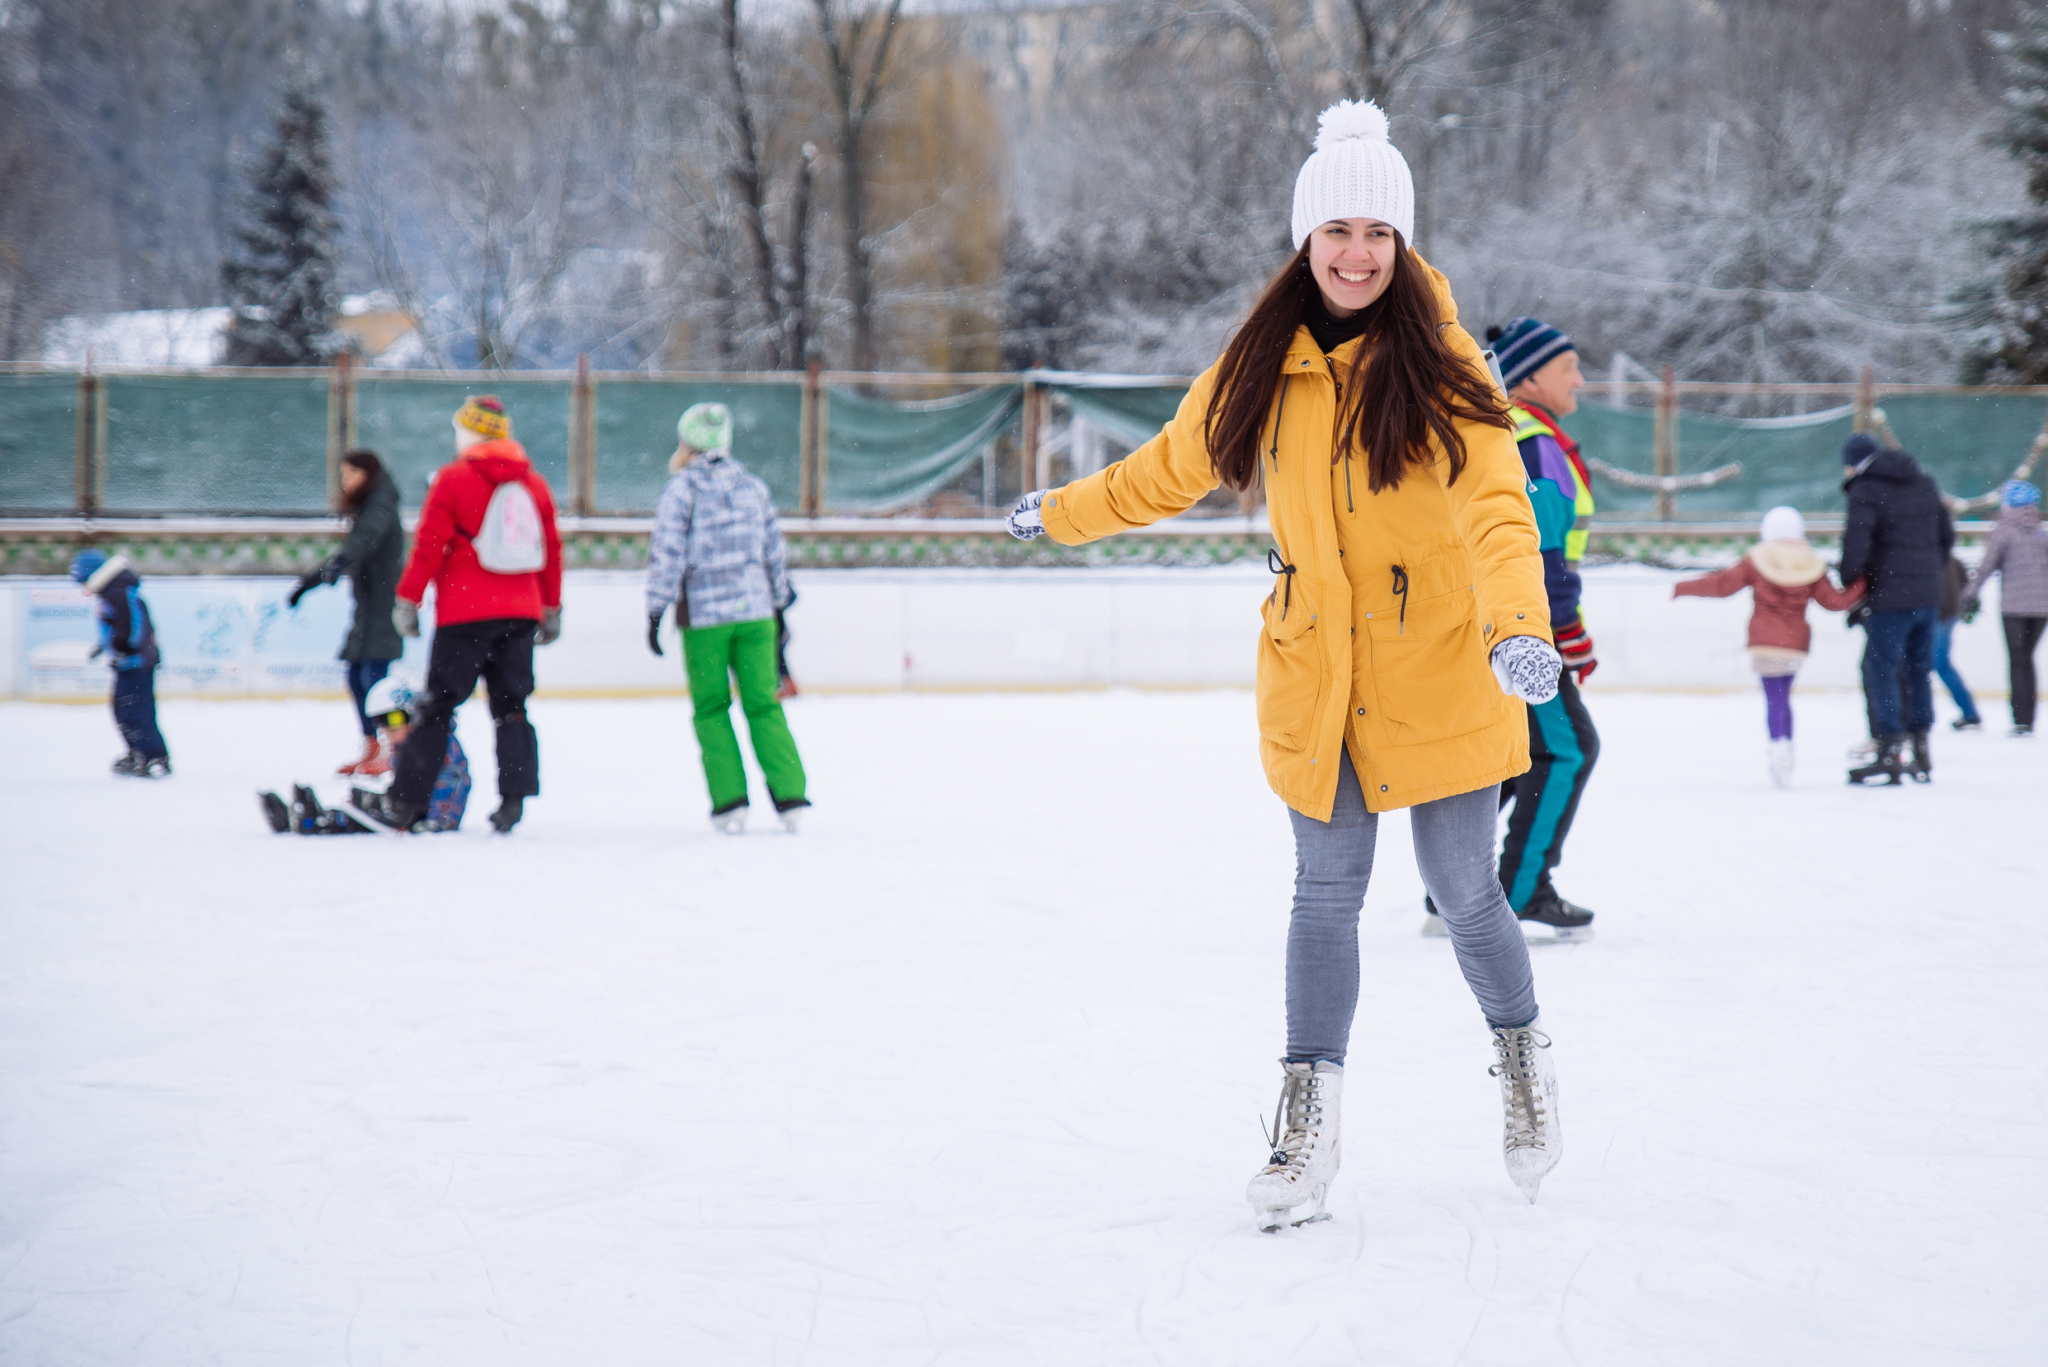 woman learn to ski at city ice rink